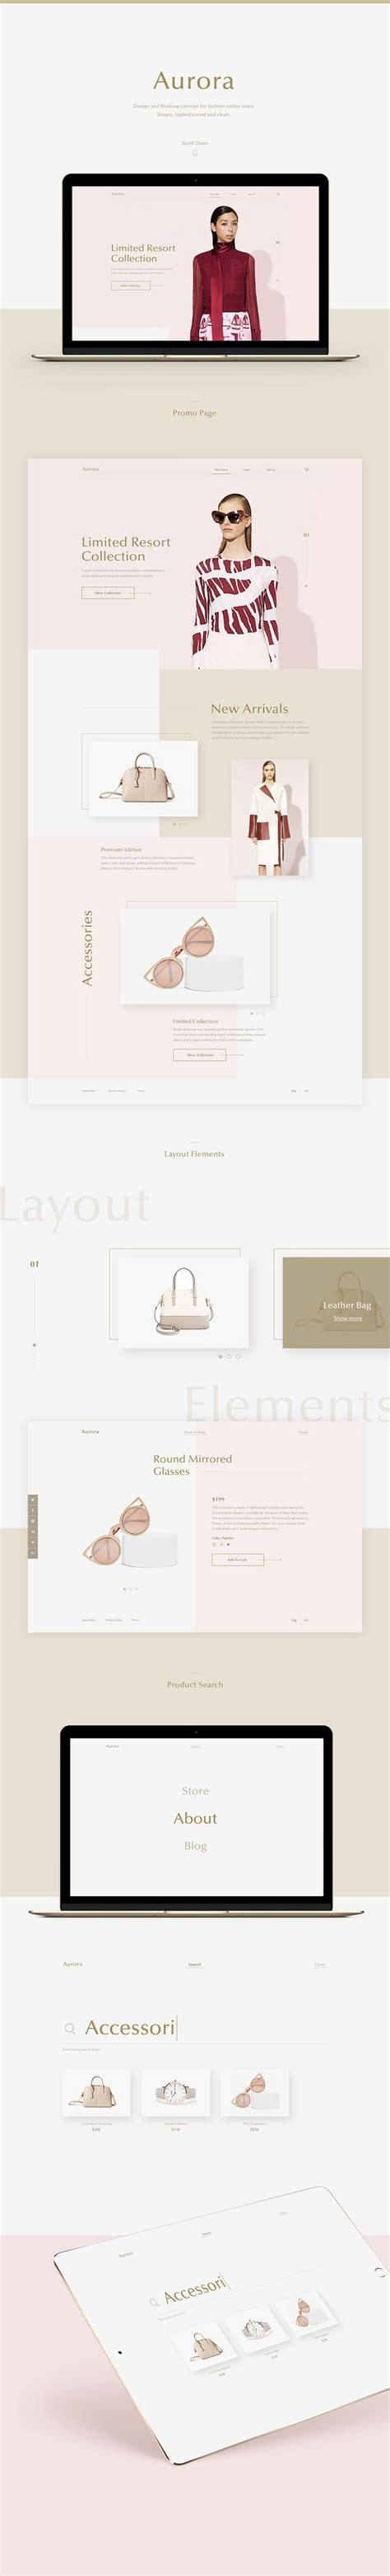 web design color schemes 2017 best web color schemes of 2017 tim b design